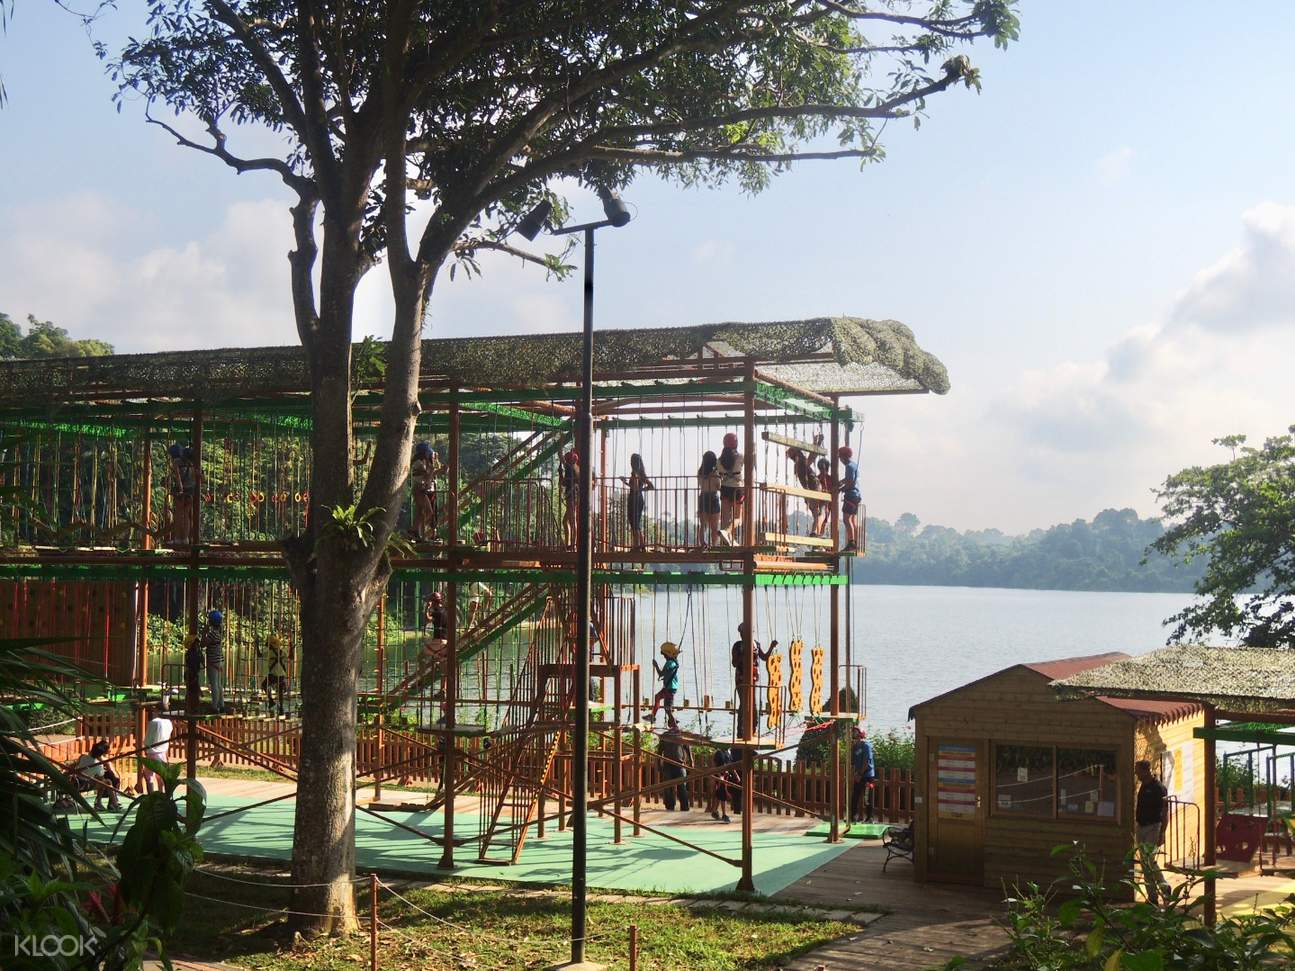 Enjoy the view of Lower Seletar Reservoir as you challenge the rope course